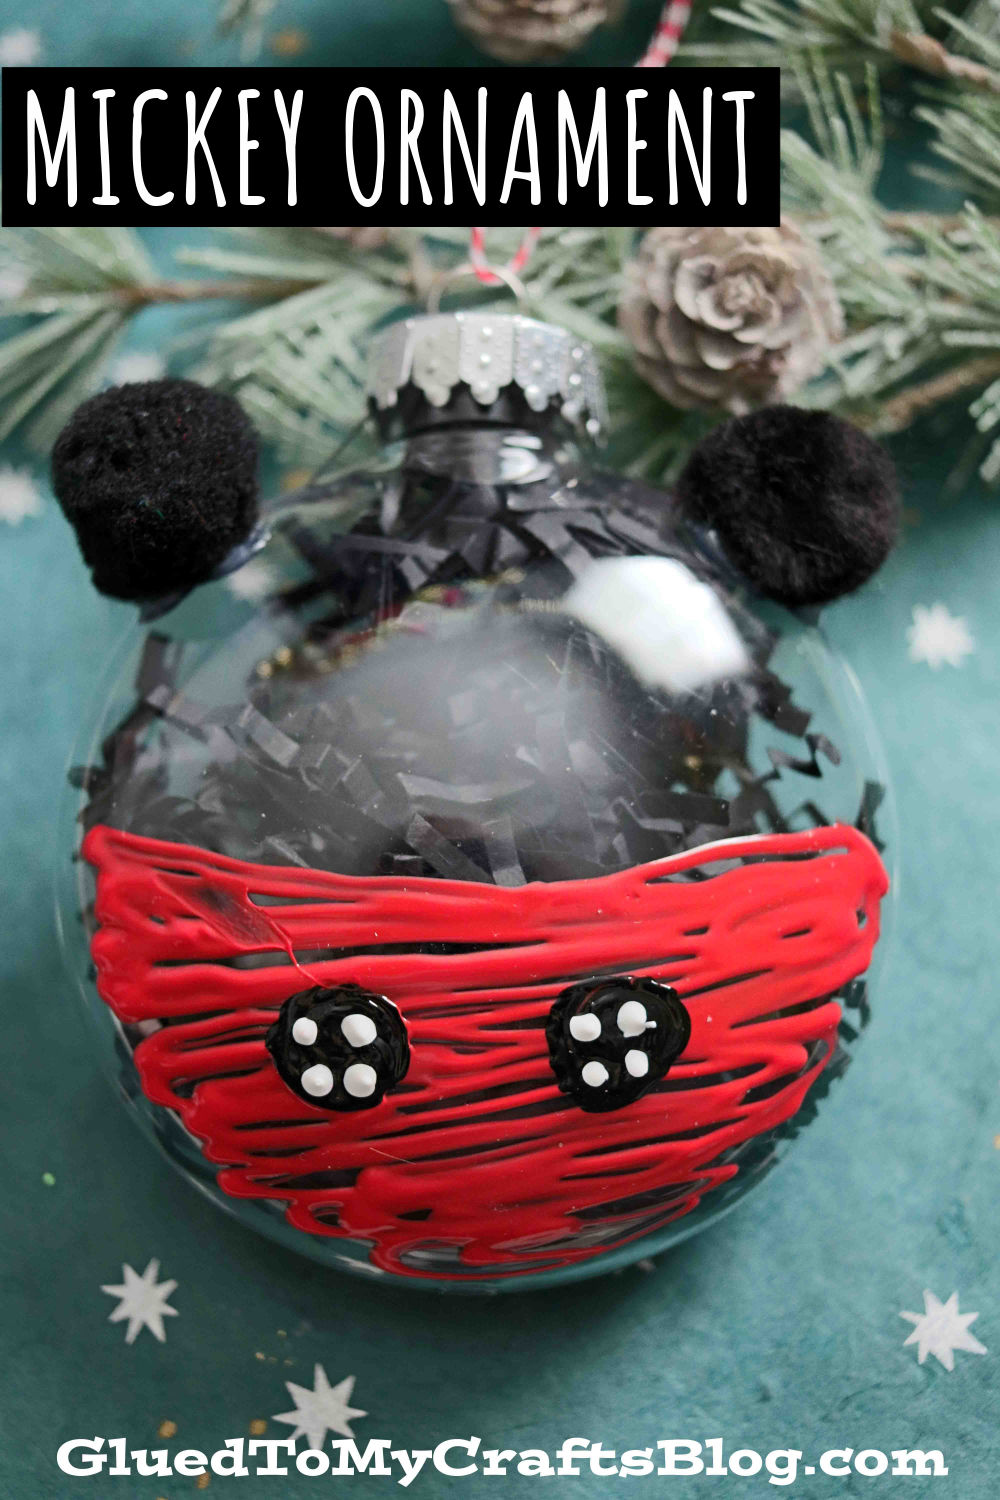 Plastic Ornament Mickey Mouse